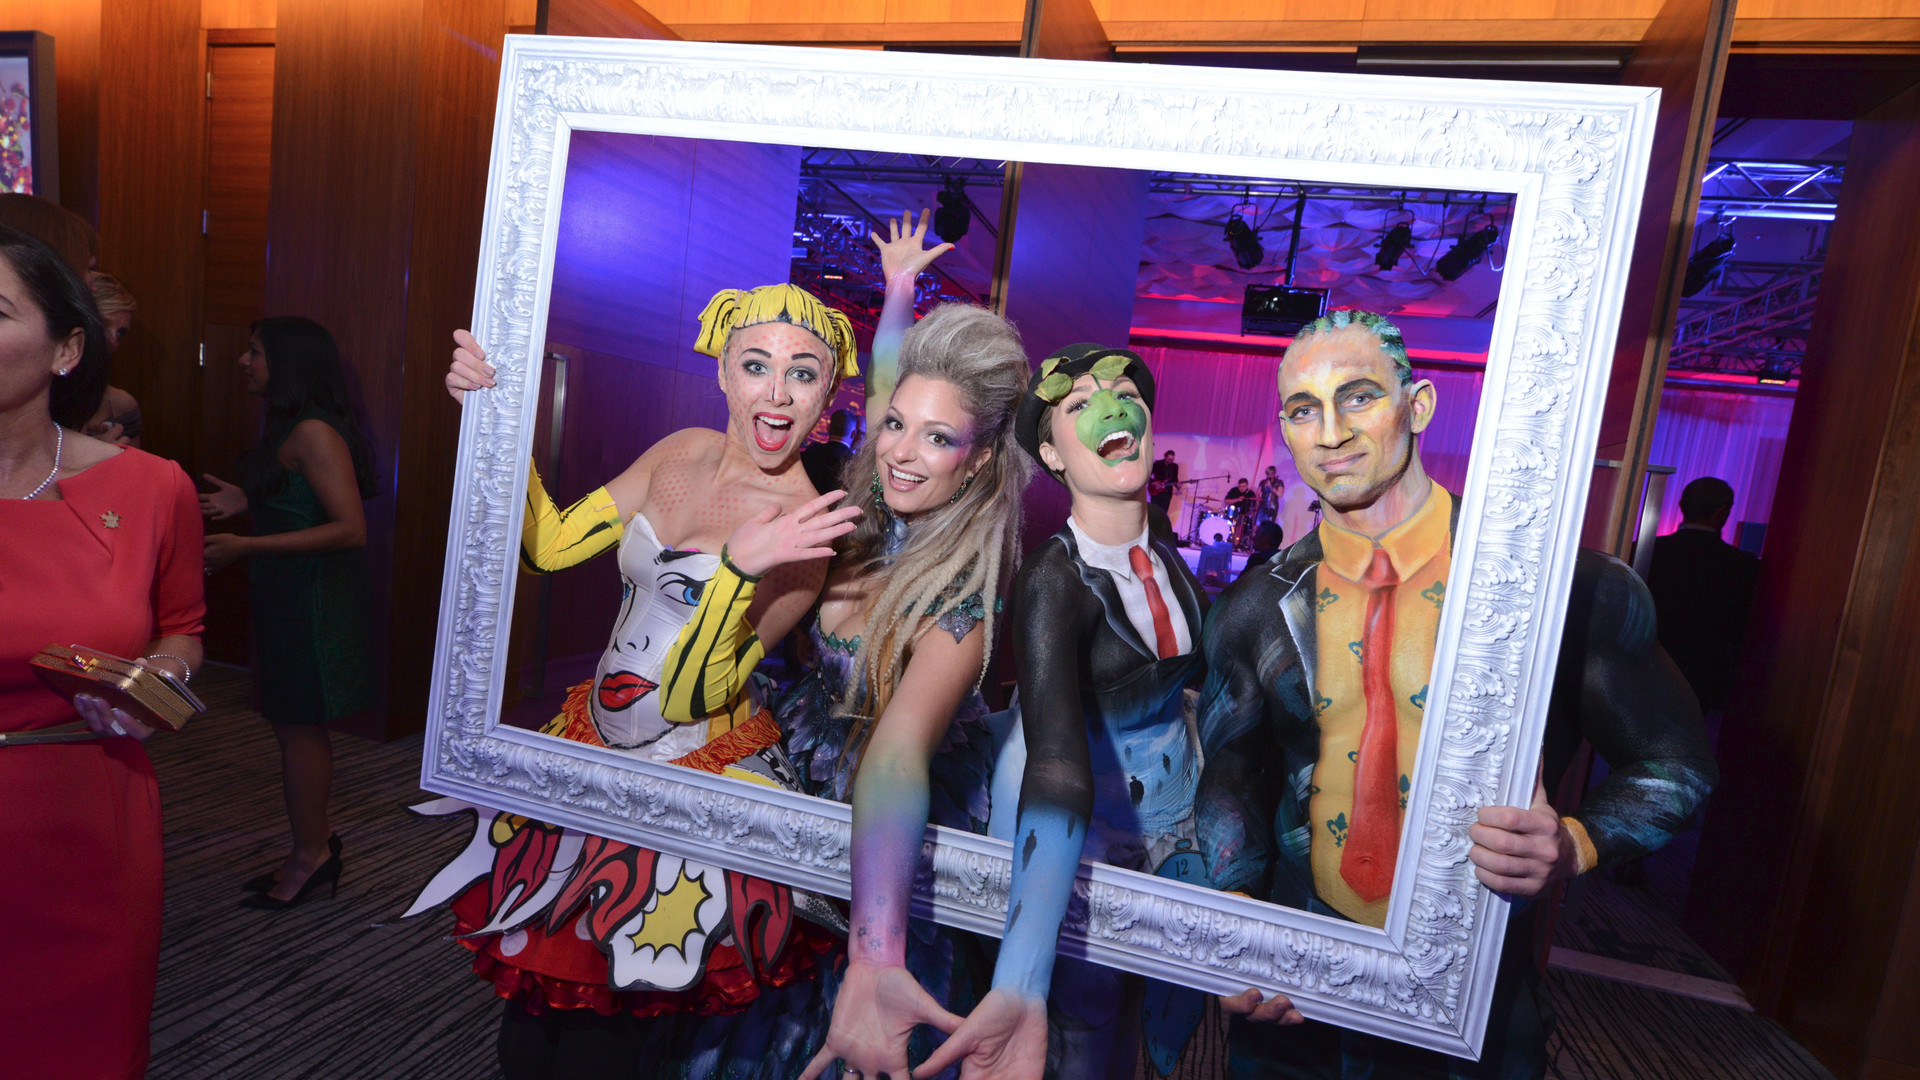 Entertainers dressed as live art for corporate event entertainment